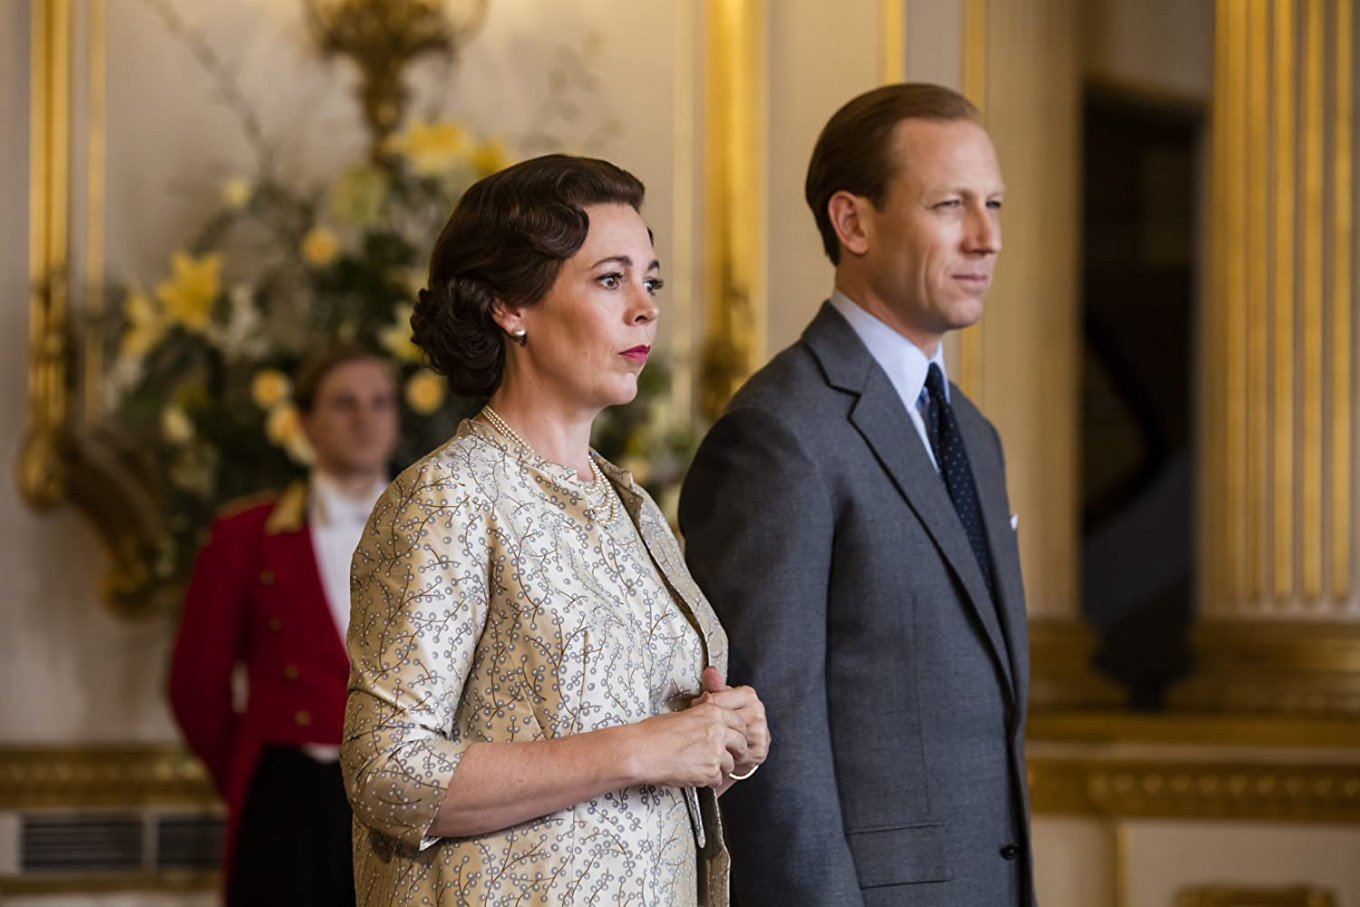 Netflix hit 'The Crown' should carry fiction warning: Minister